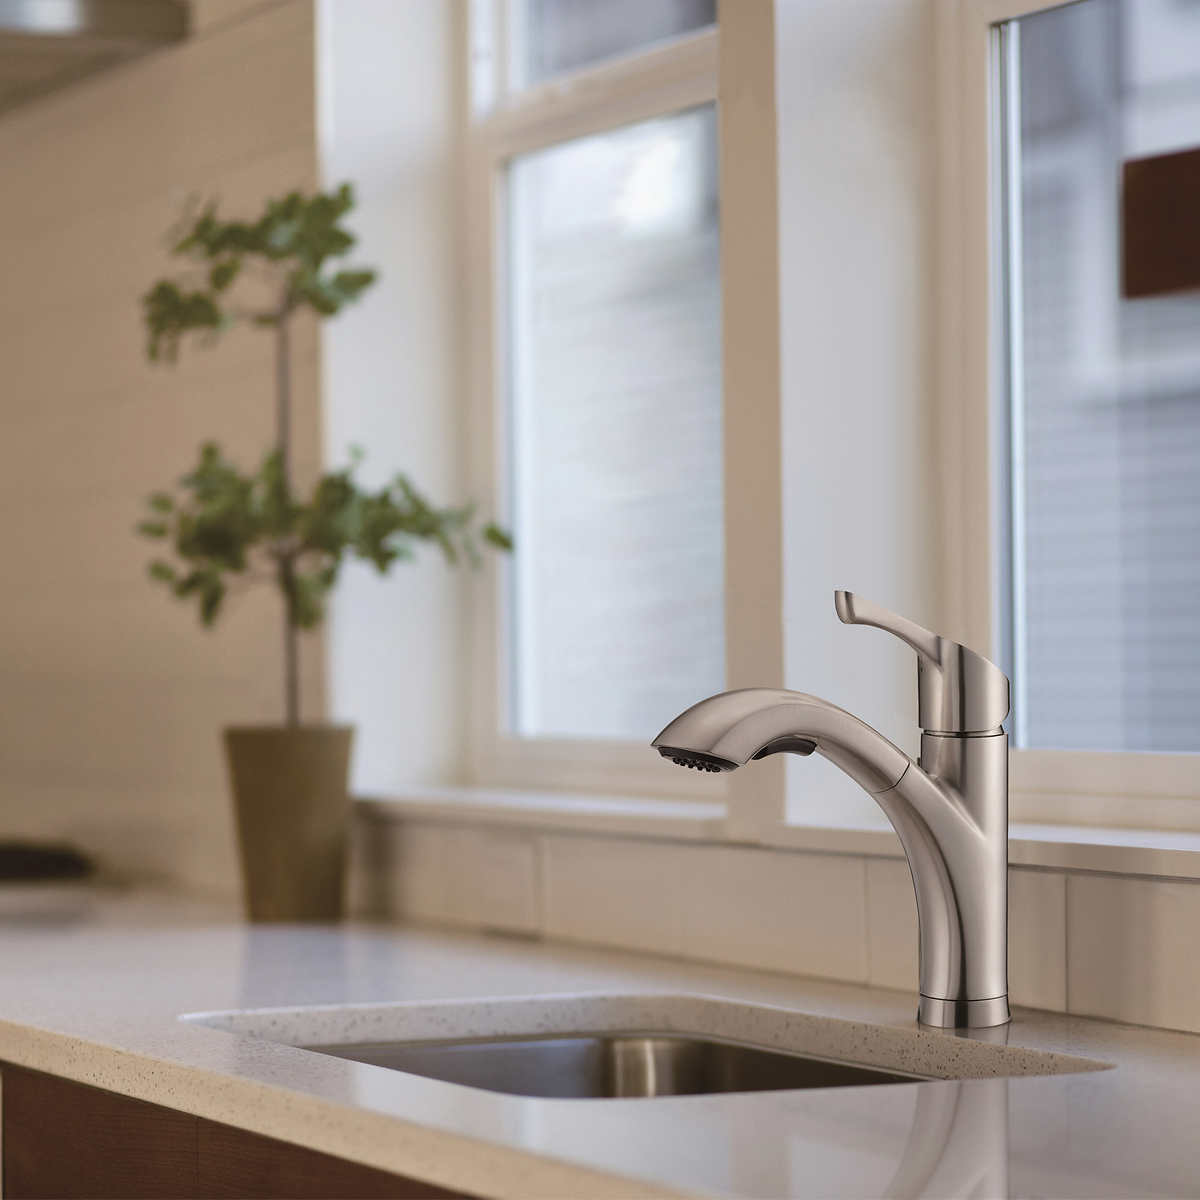 The Foodie Single-handle Pre-rinse Kitchen Faucet by Danze Inc.